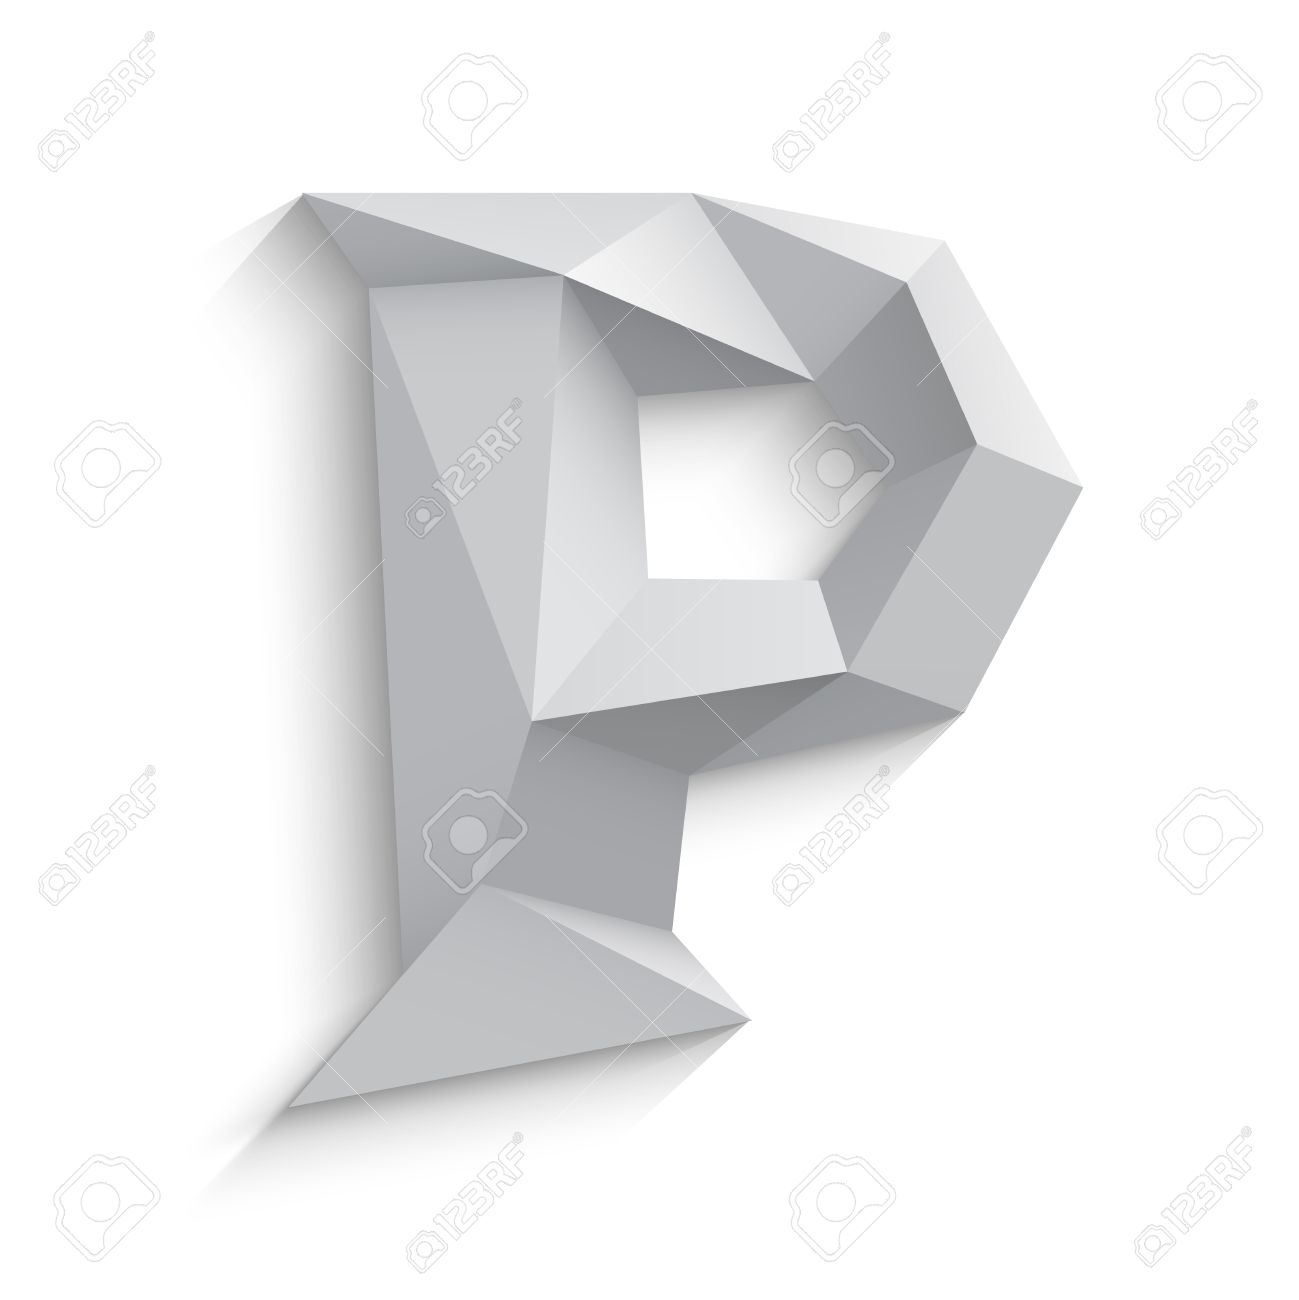 Vector illustration of 3d letter p on white background icon vector illustration of 3d letter p on white background icon design abstract template element biocorpaavc